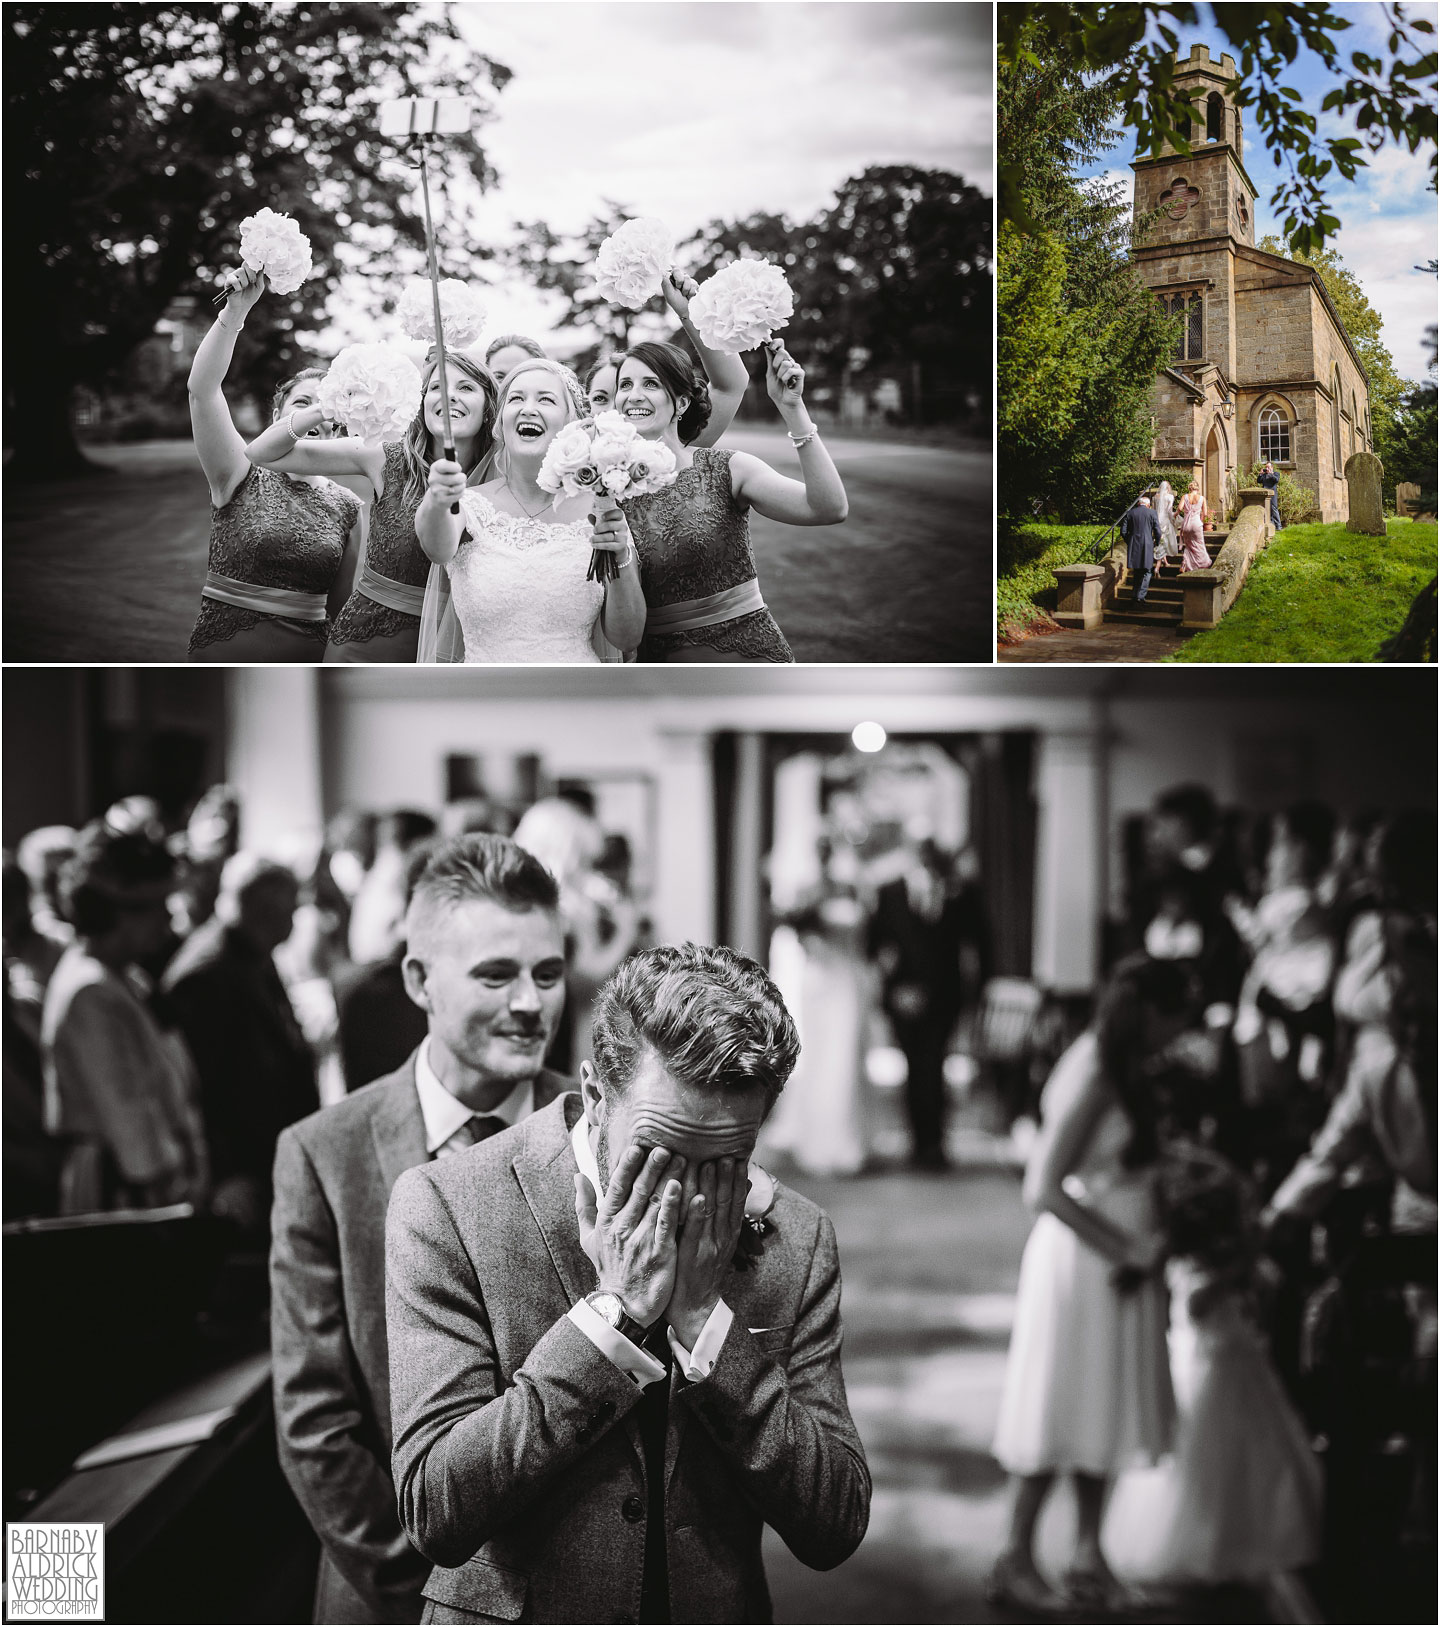 Wedding photos of the bridesmaids and groomsmen at St Helen's Church at Denton Hall in Yorkshire